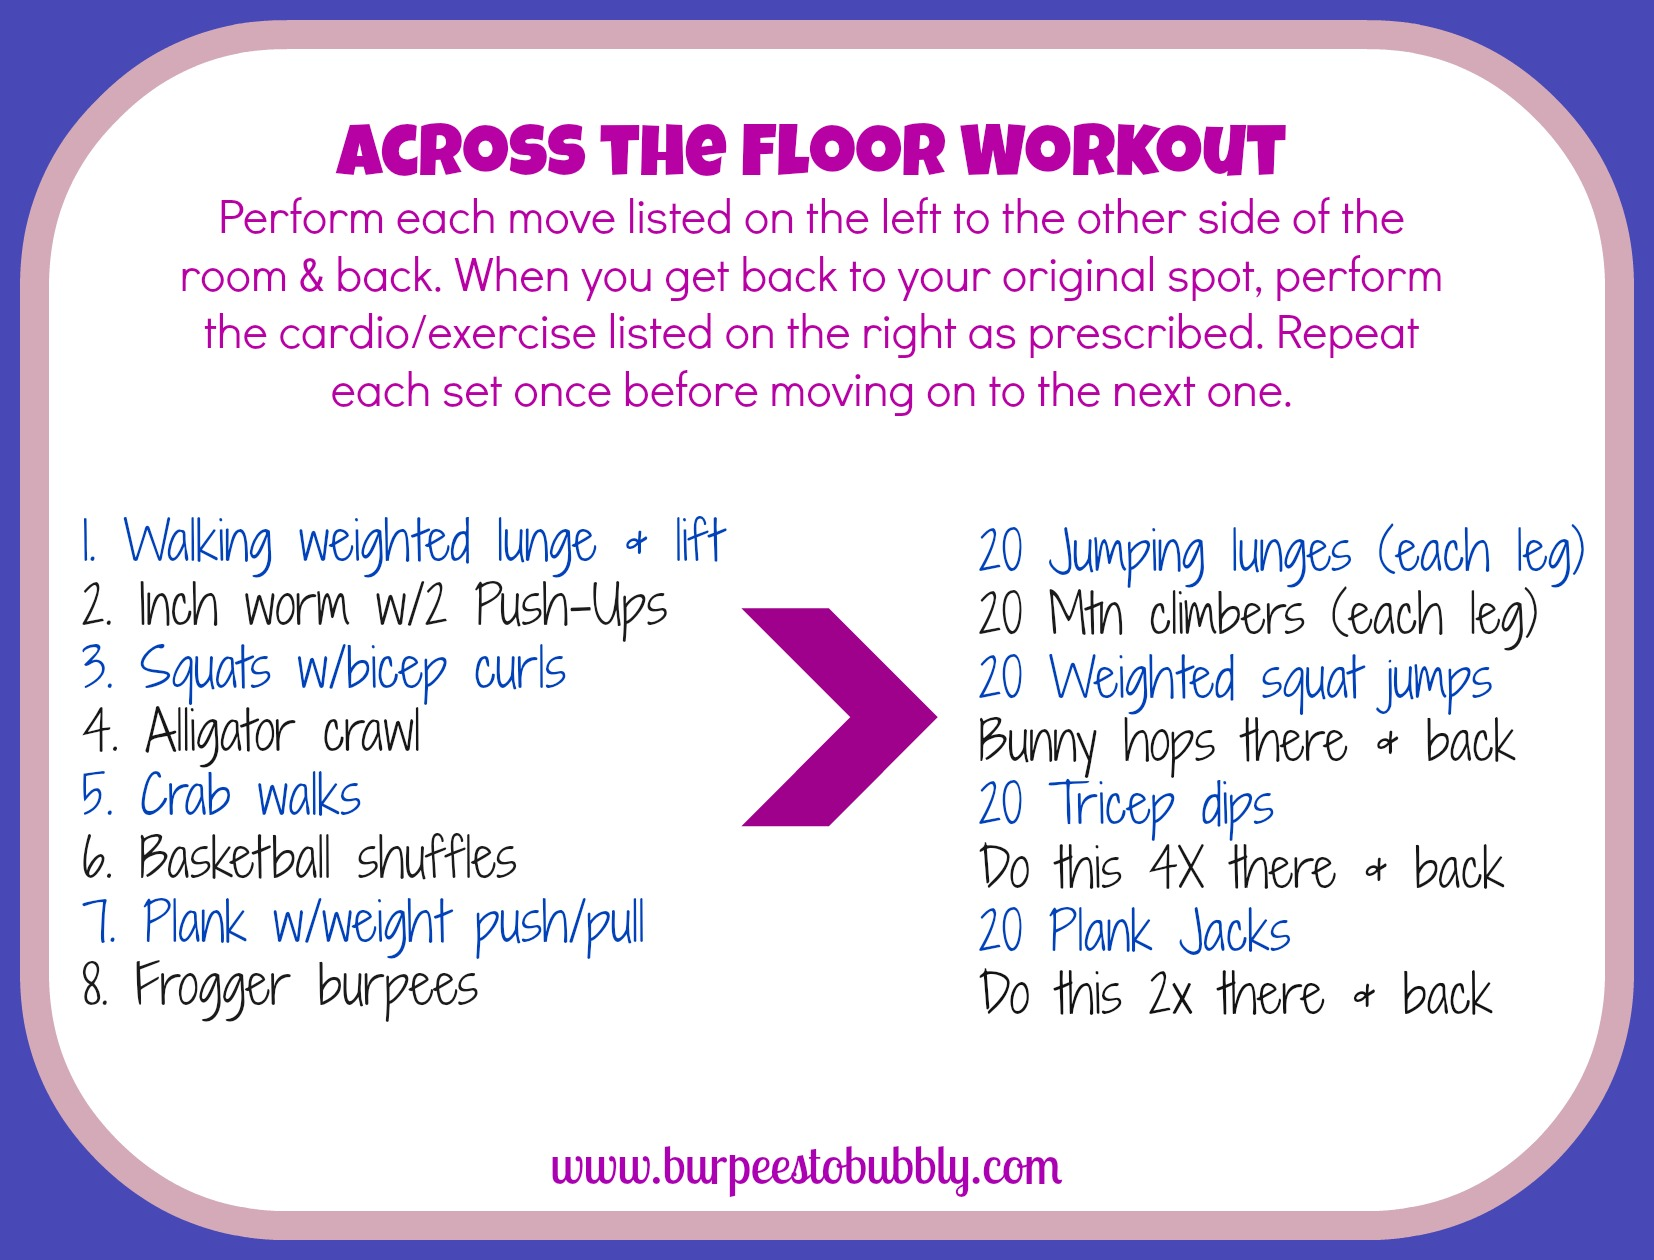 Wednesday Workout: Across the Floor Workout | Burpees to ...